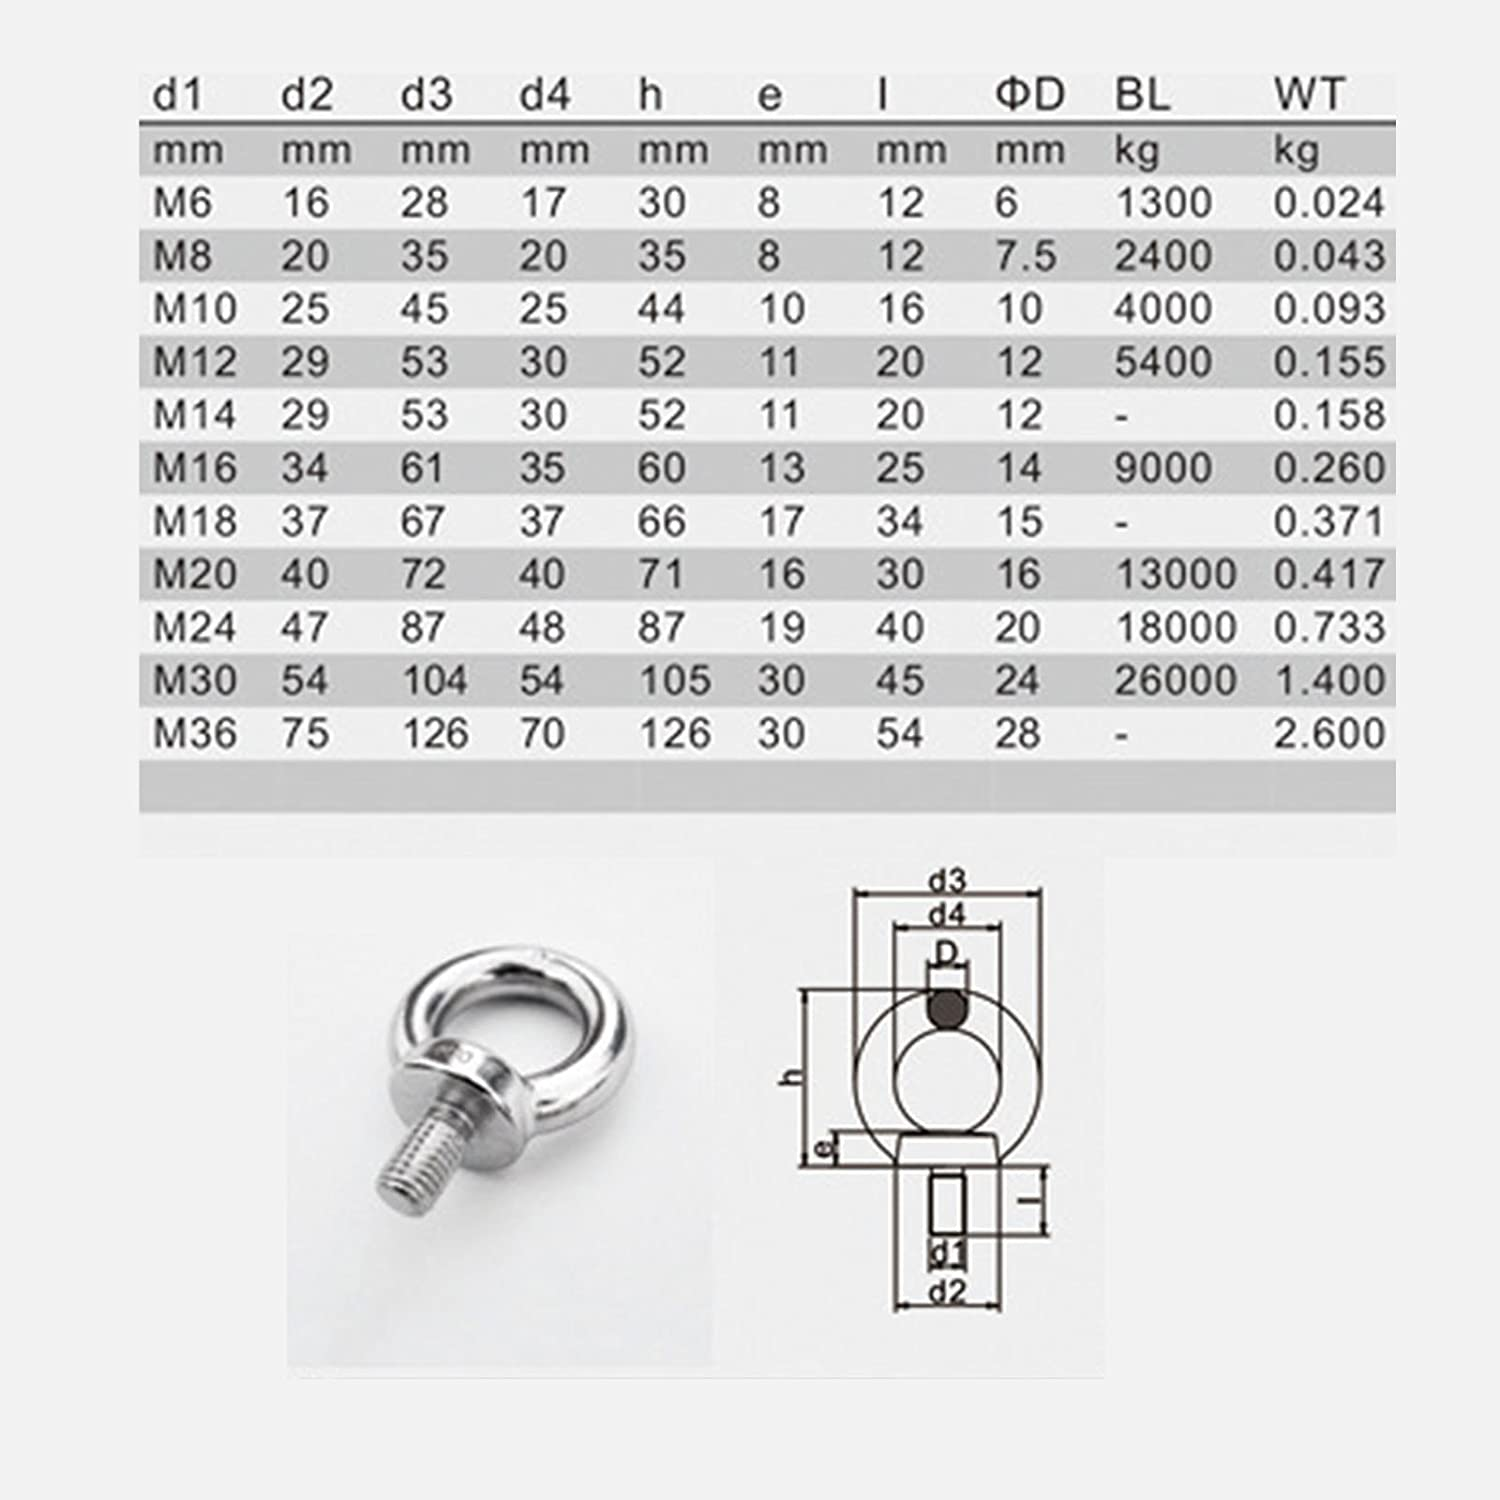 5 Pcs M6 316 Machinery Shoulder Grade Stainless Steel Lifting Ring Eye Bolt Nuts Screws Bolts